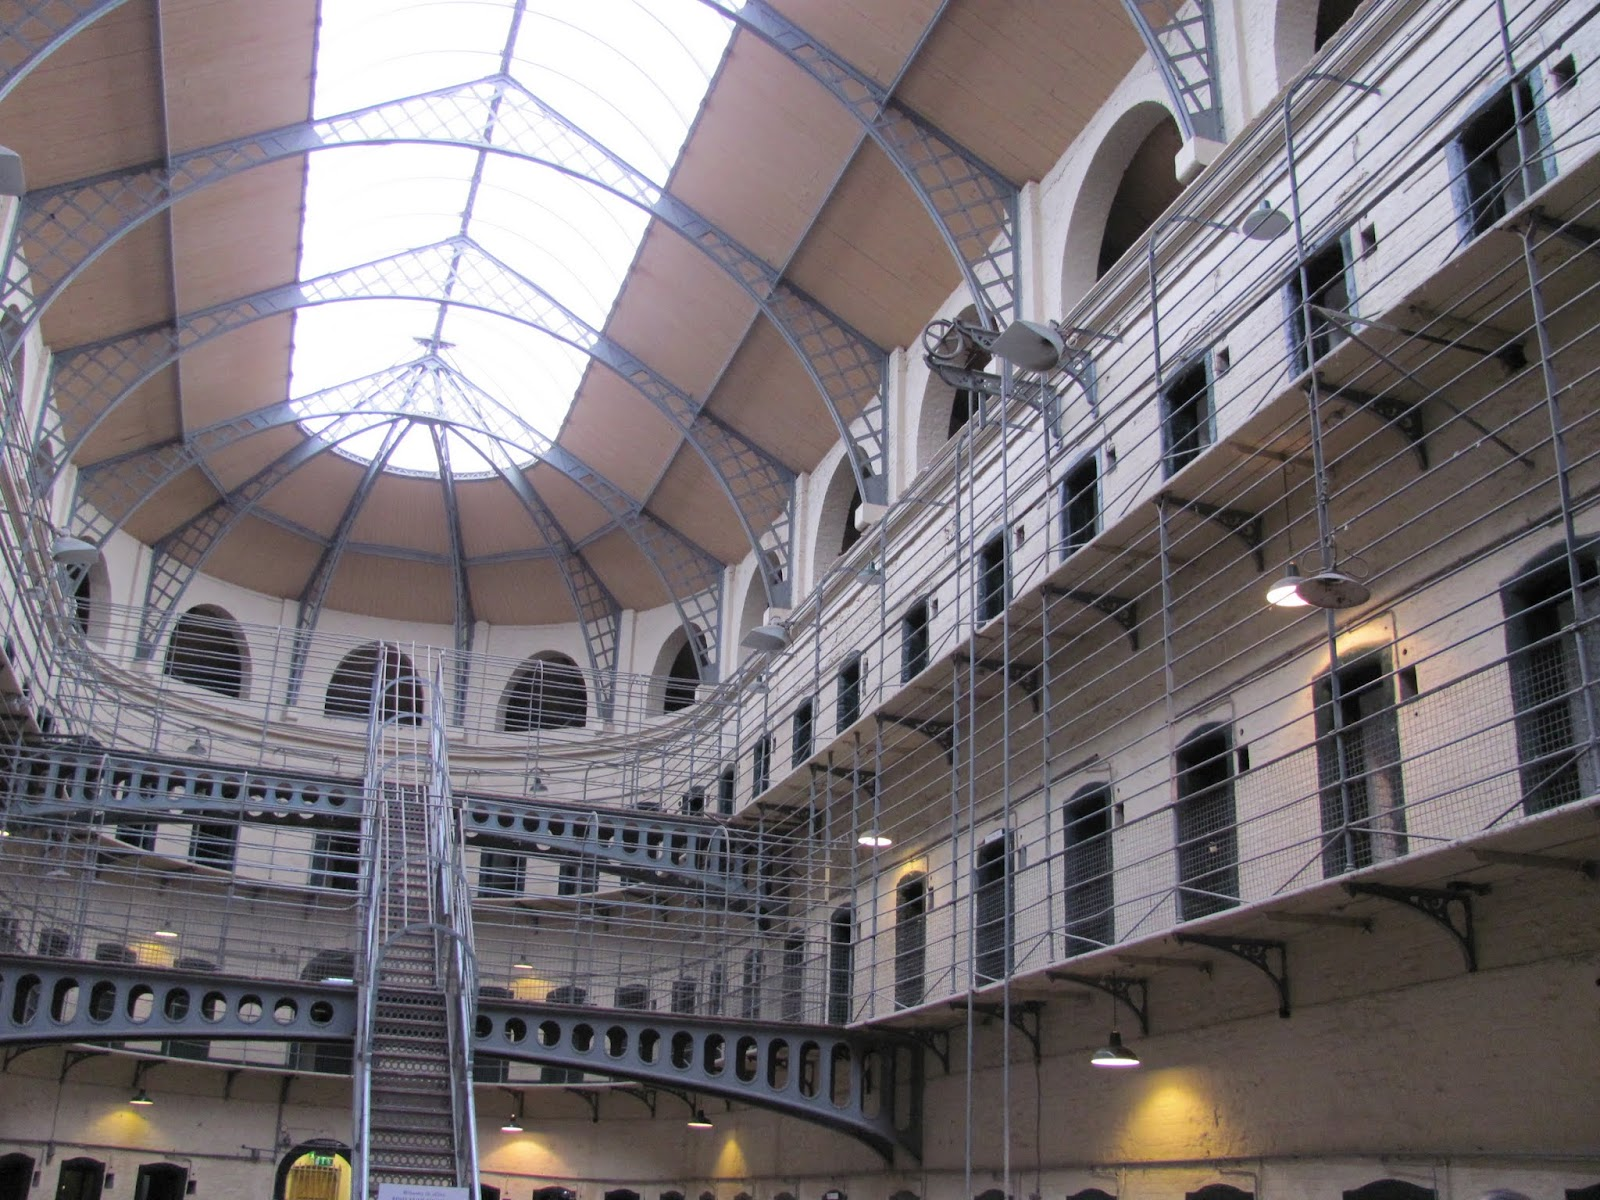 The grand cell block at Kilmainham Gaol